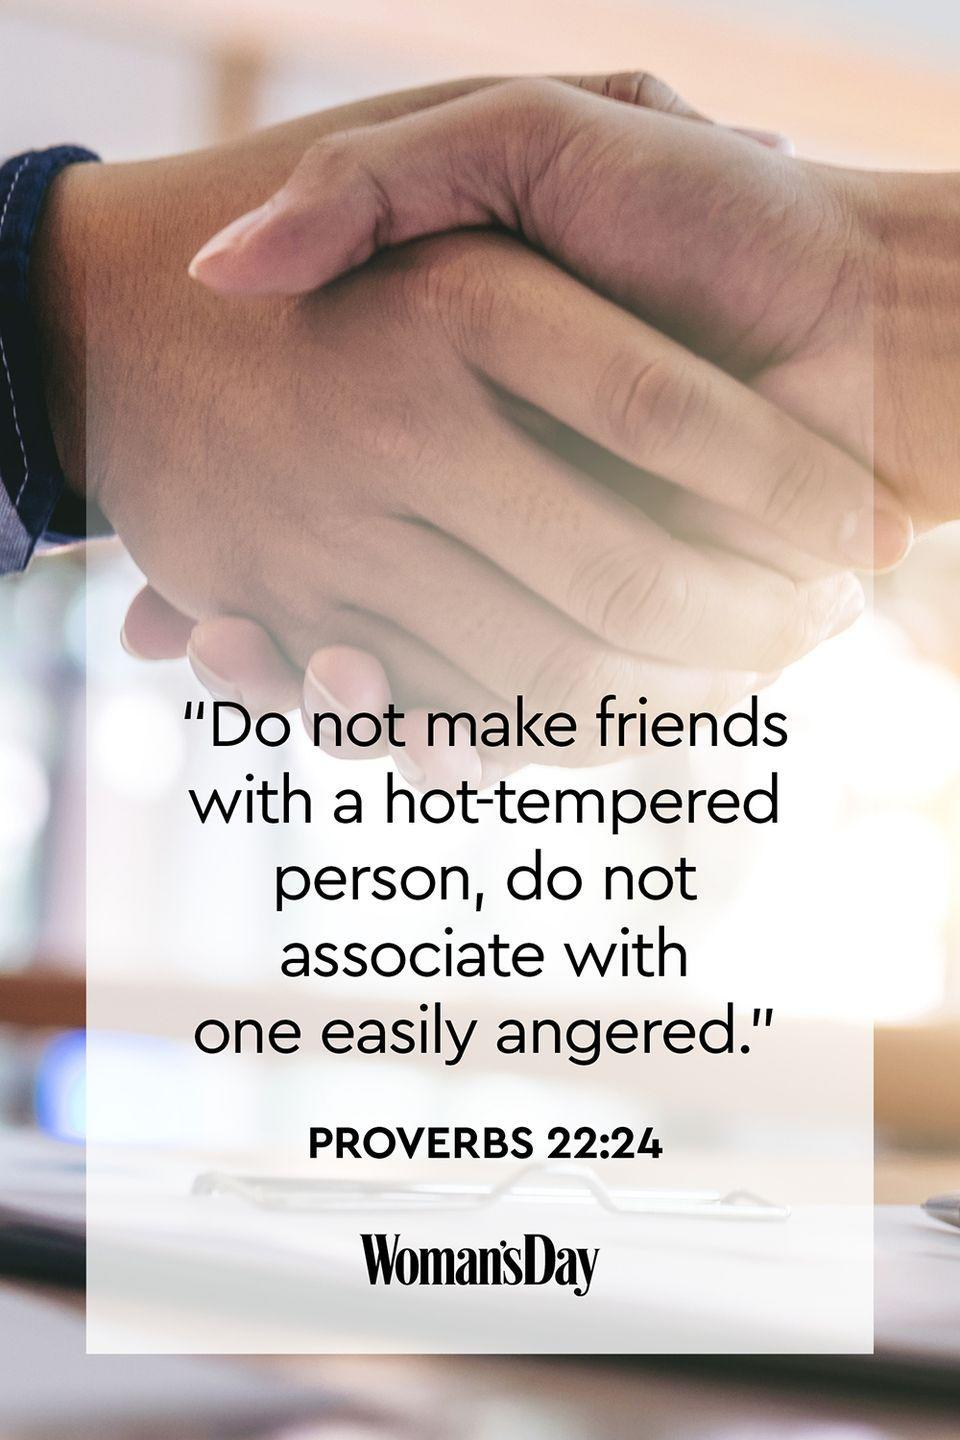 """<p>""""Do not make friends with a hot-tempered person, do not associate with one easily angered.""""</p><p><strong>The Good News</strong>: This Bible verse is an example of the quote: """"Tell me who your friends are and I'll tell you who you are."""" When we associate with people who have a bad temper, we can start to act like them. </p>"""